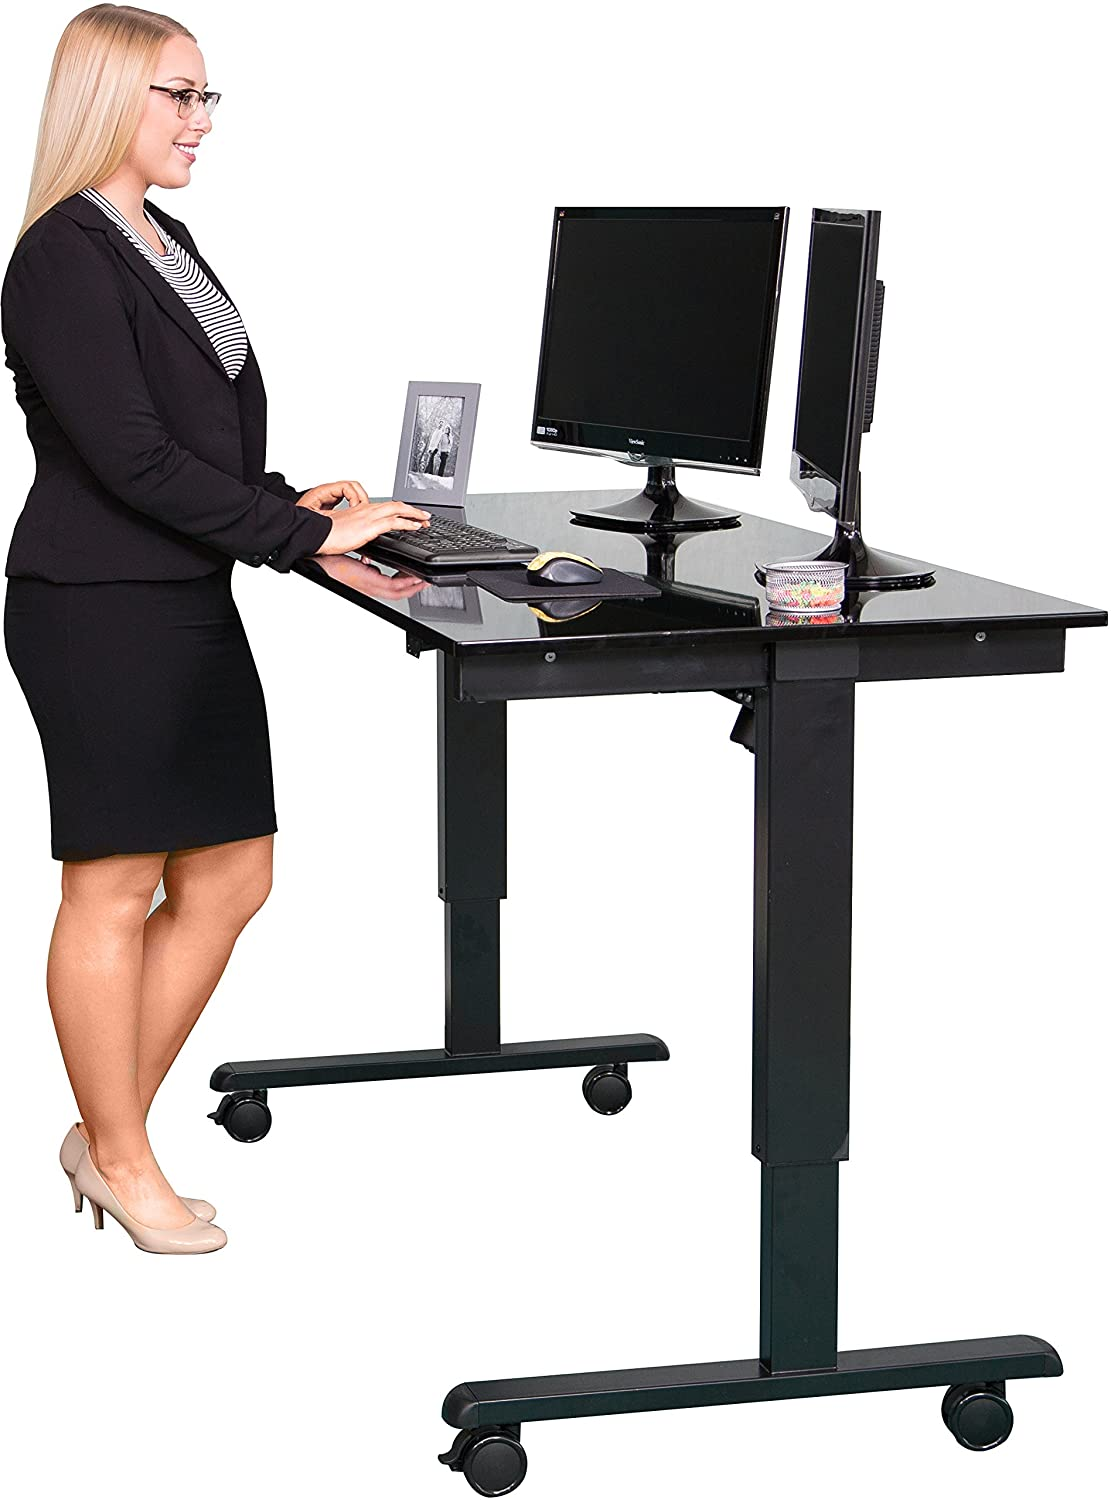 amazon com stand up desk store electric standing desk adjustable rh amazon com desk stand up printable display signs desk stand up or sit down